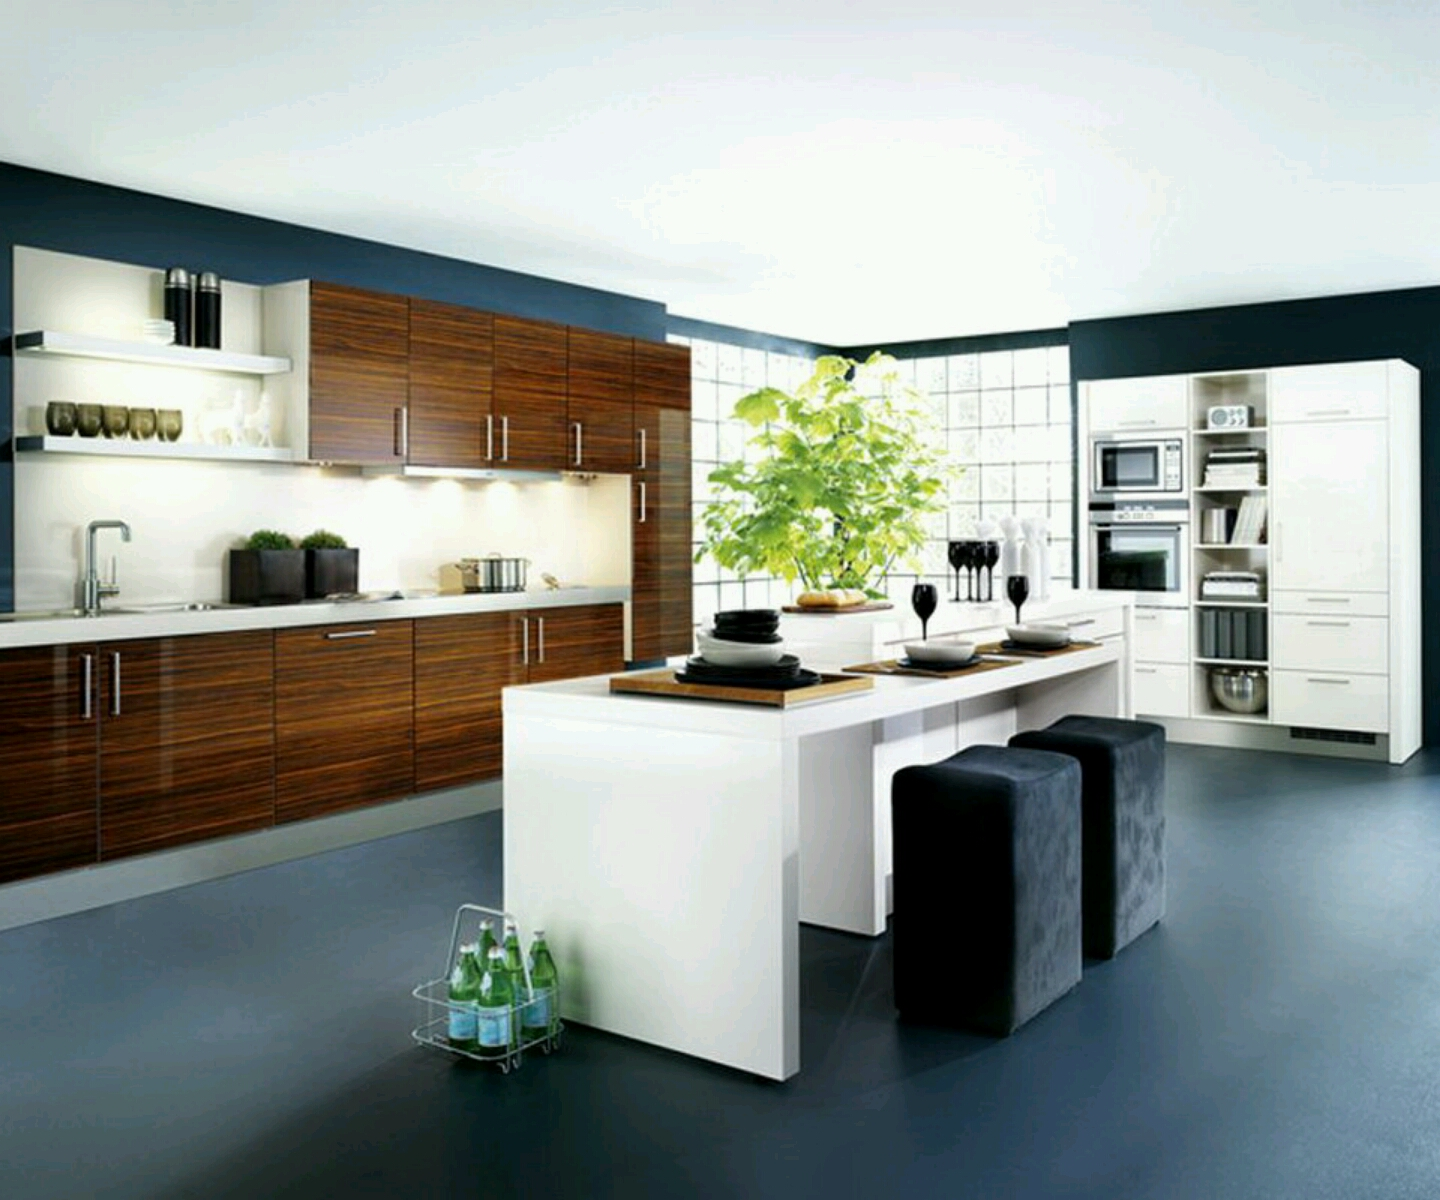 New home designs latest kitchen cabinets designs modern Kitchen cabinet designs